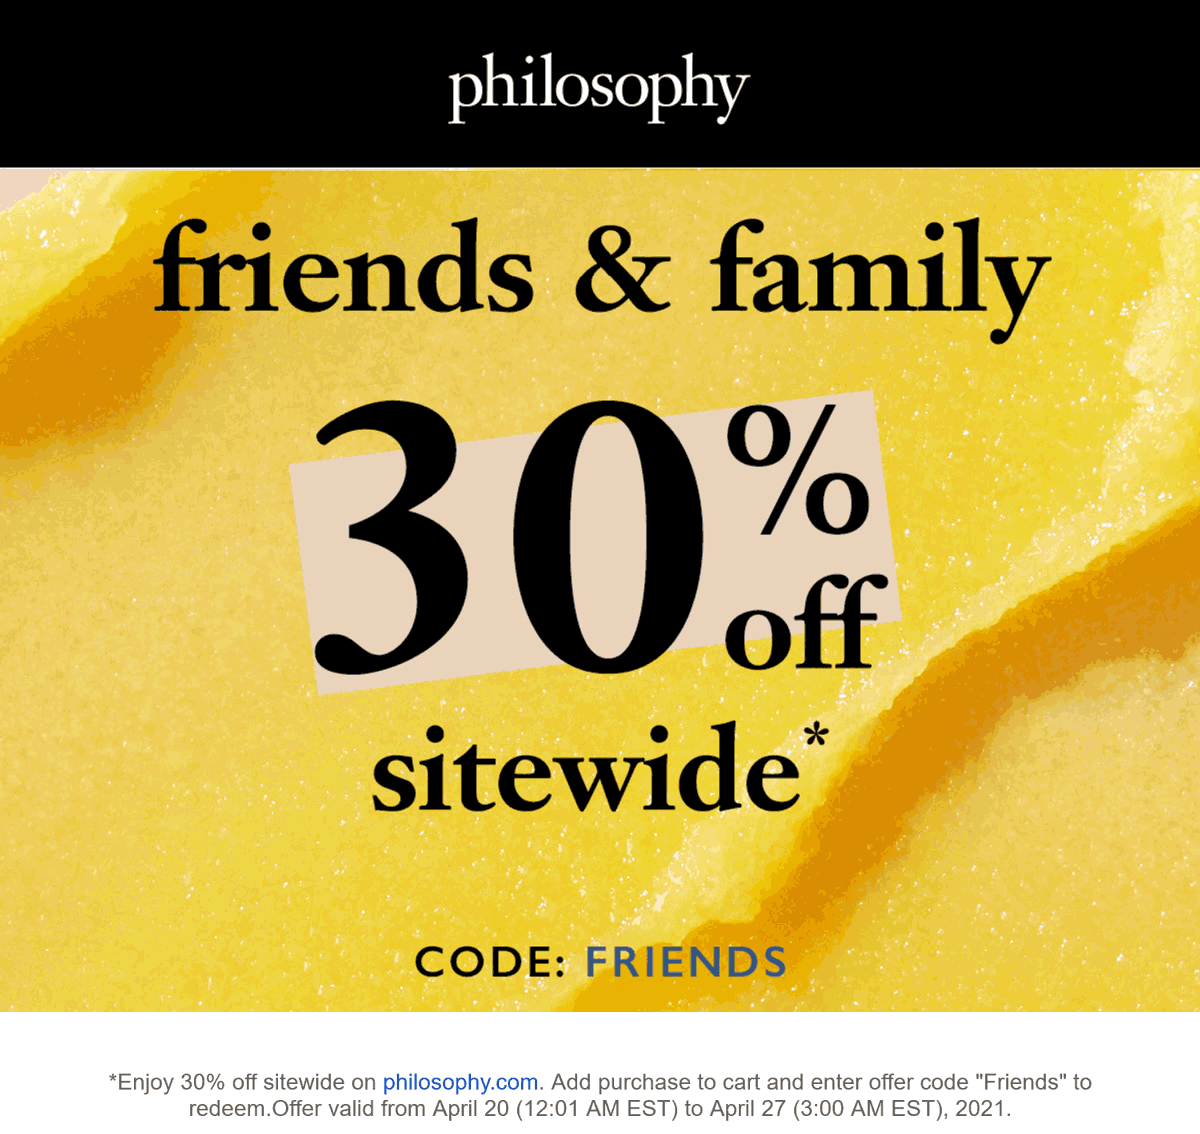 Philosophy stores Coupon  30% off online at Philosophy via promo code FRIENDS #philosophy